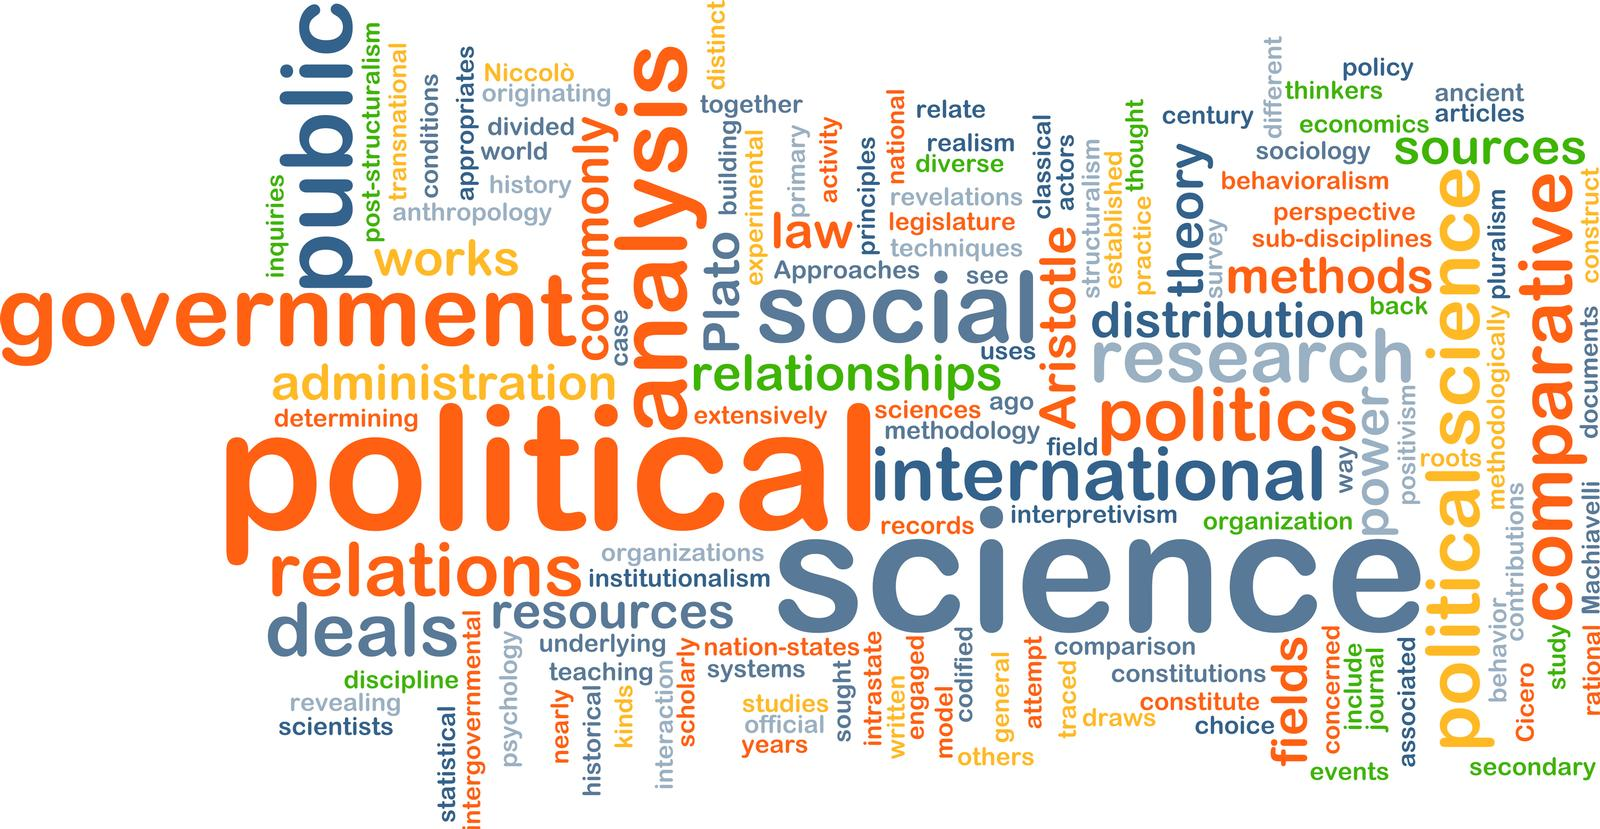 Terms relating to political science